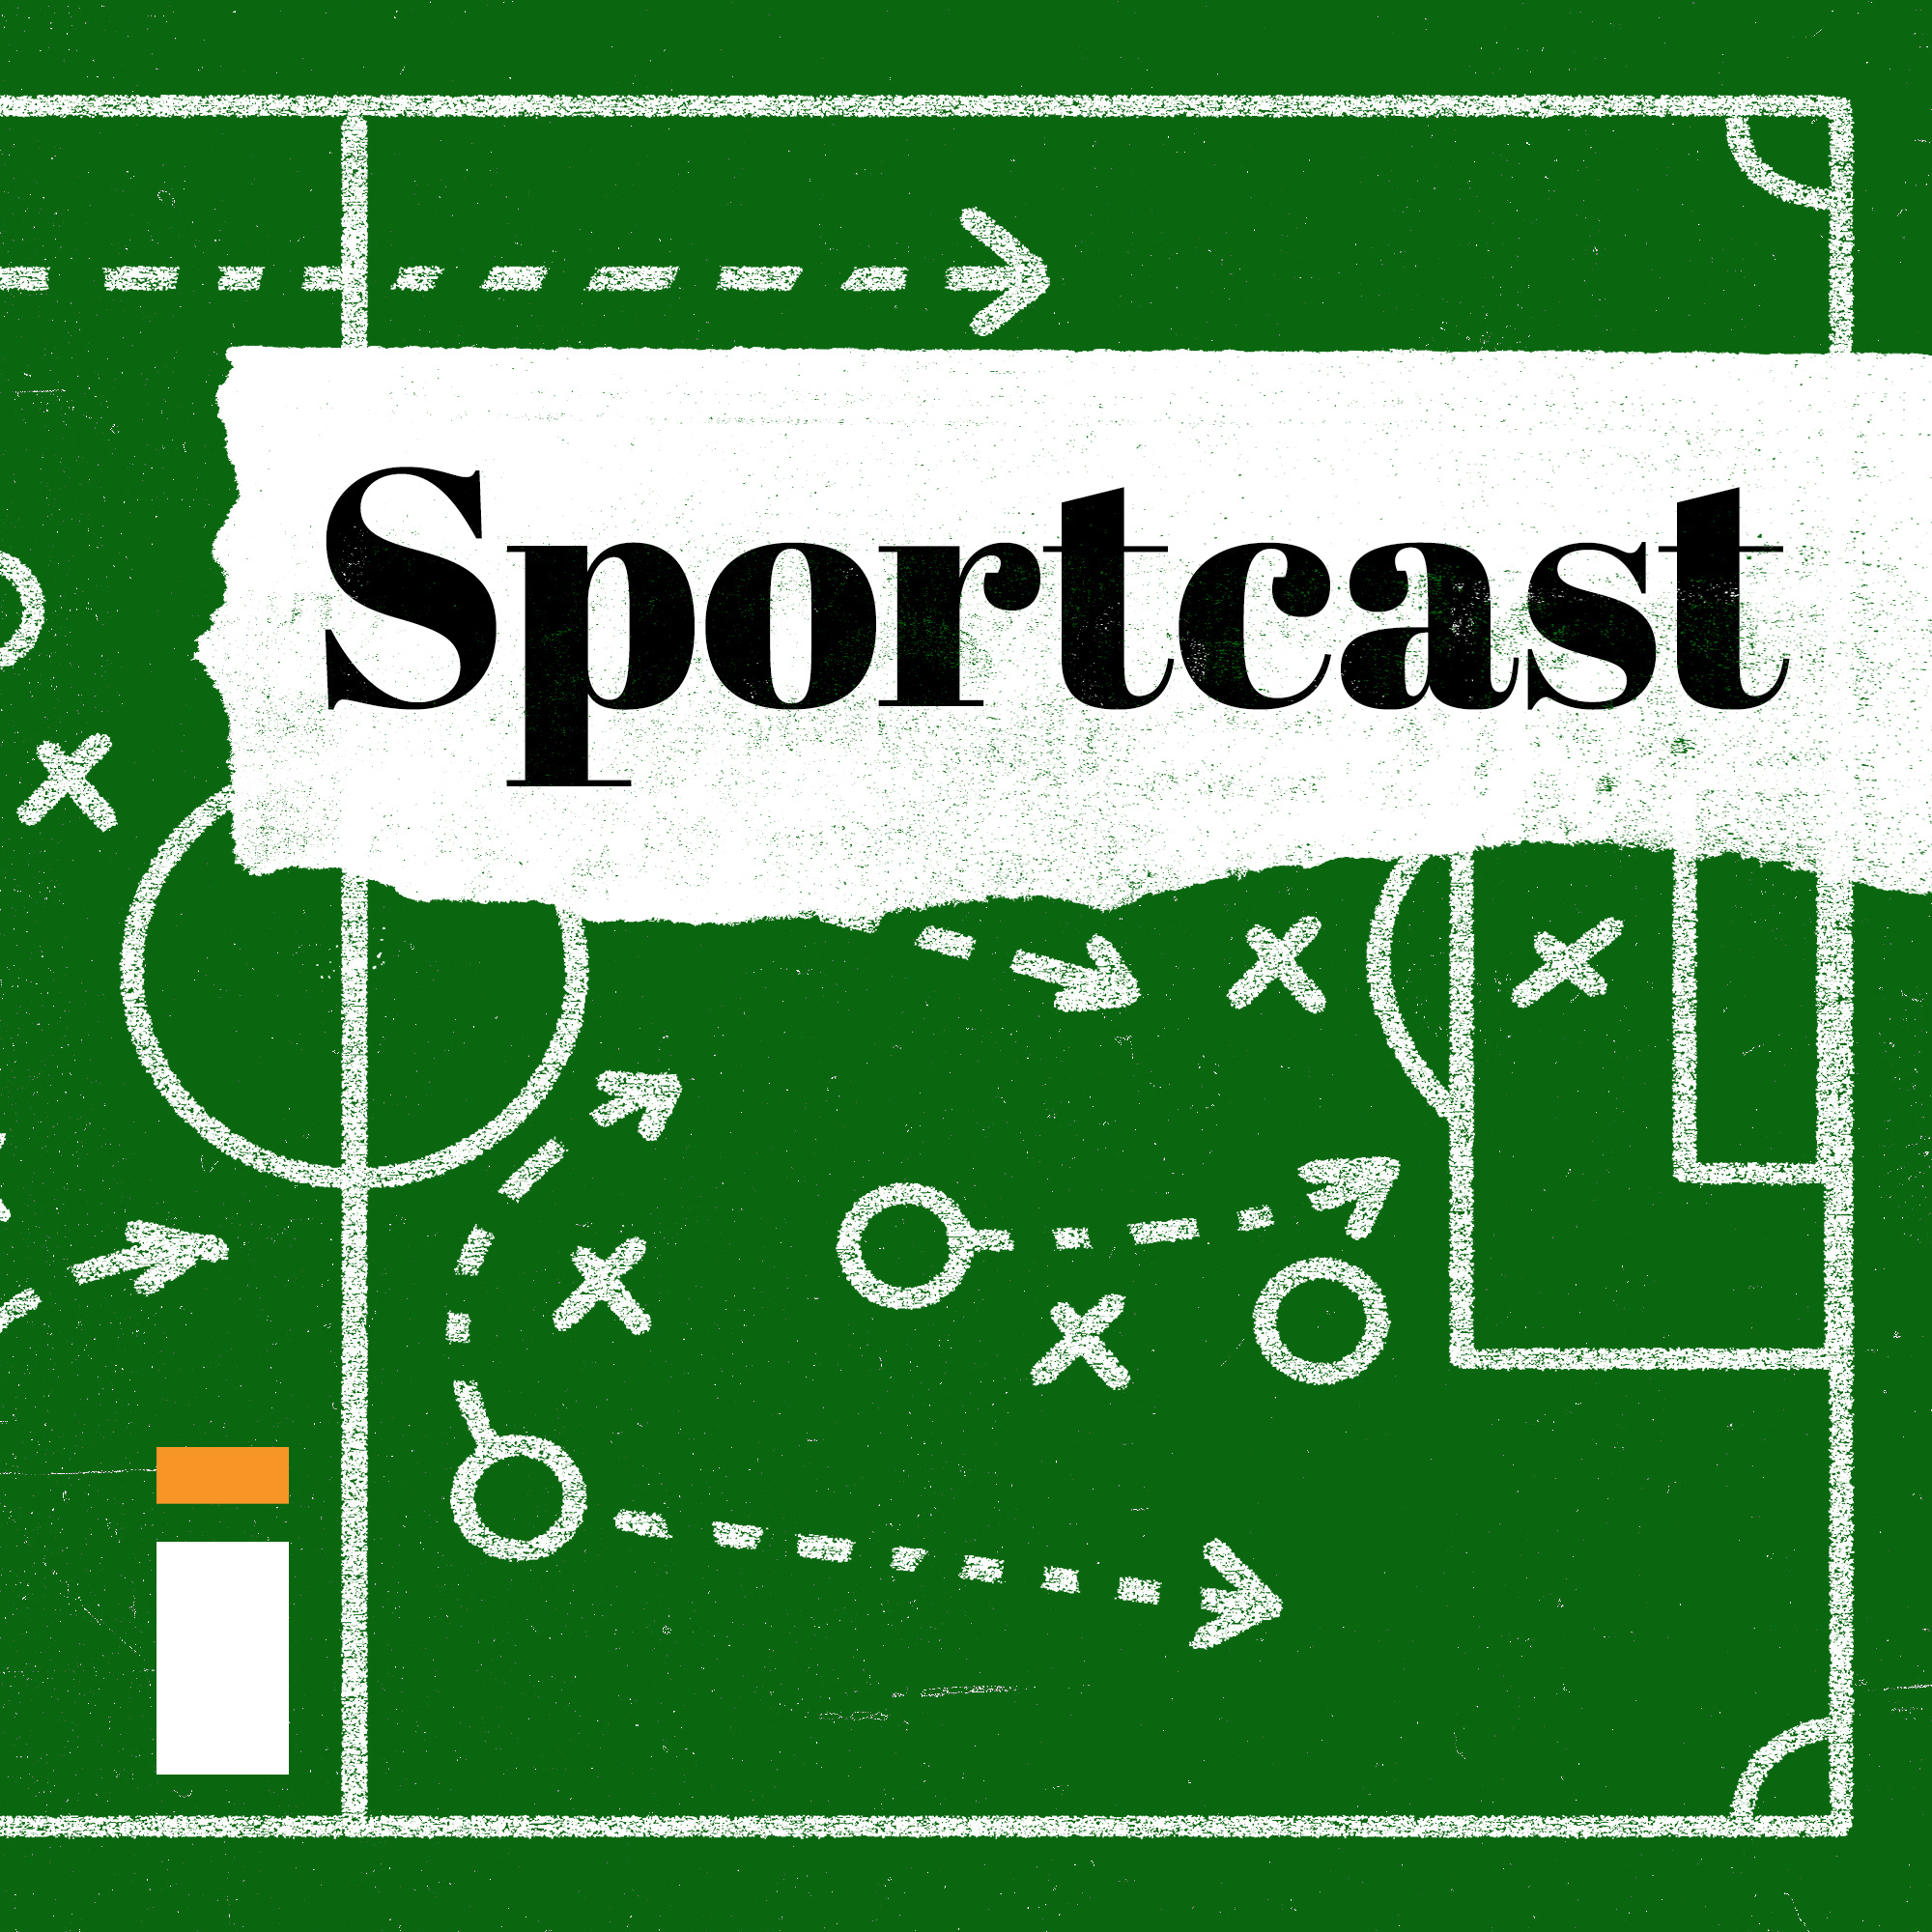 Index Sportcast Podcast - Listen, Reviews, Charts - Chartable